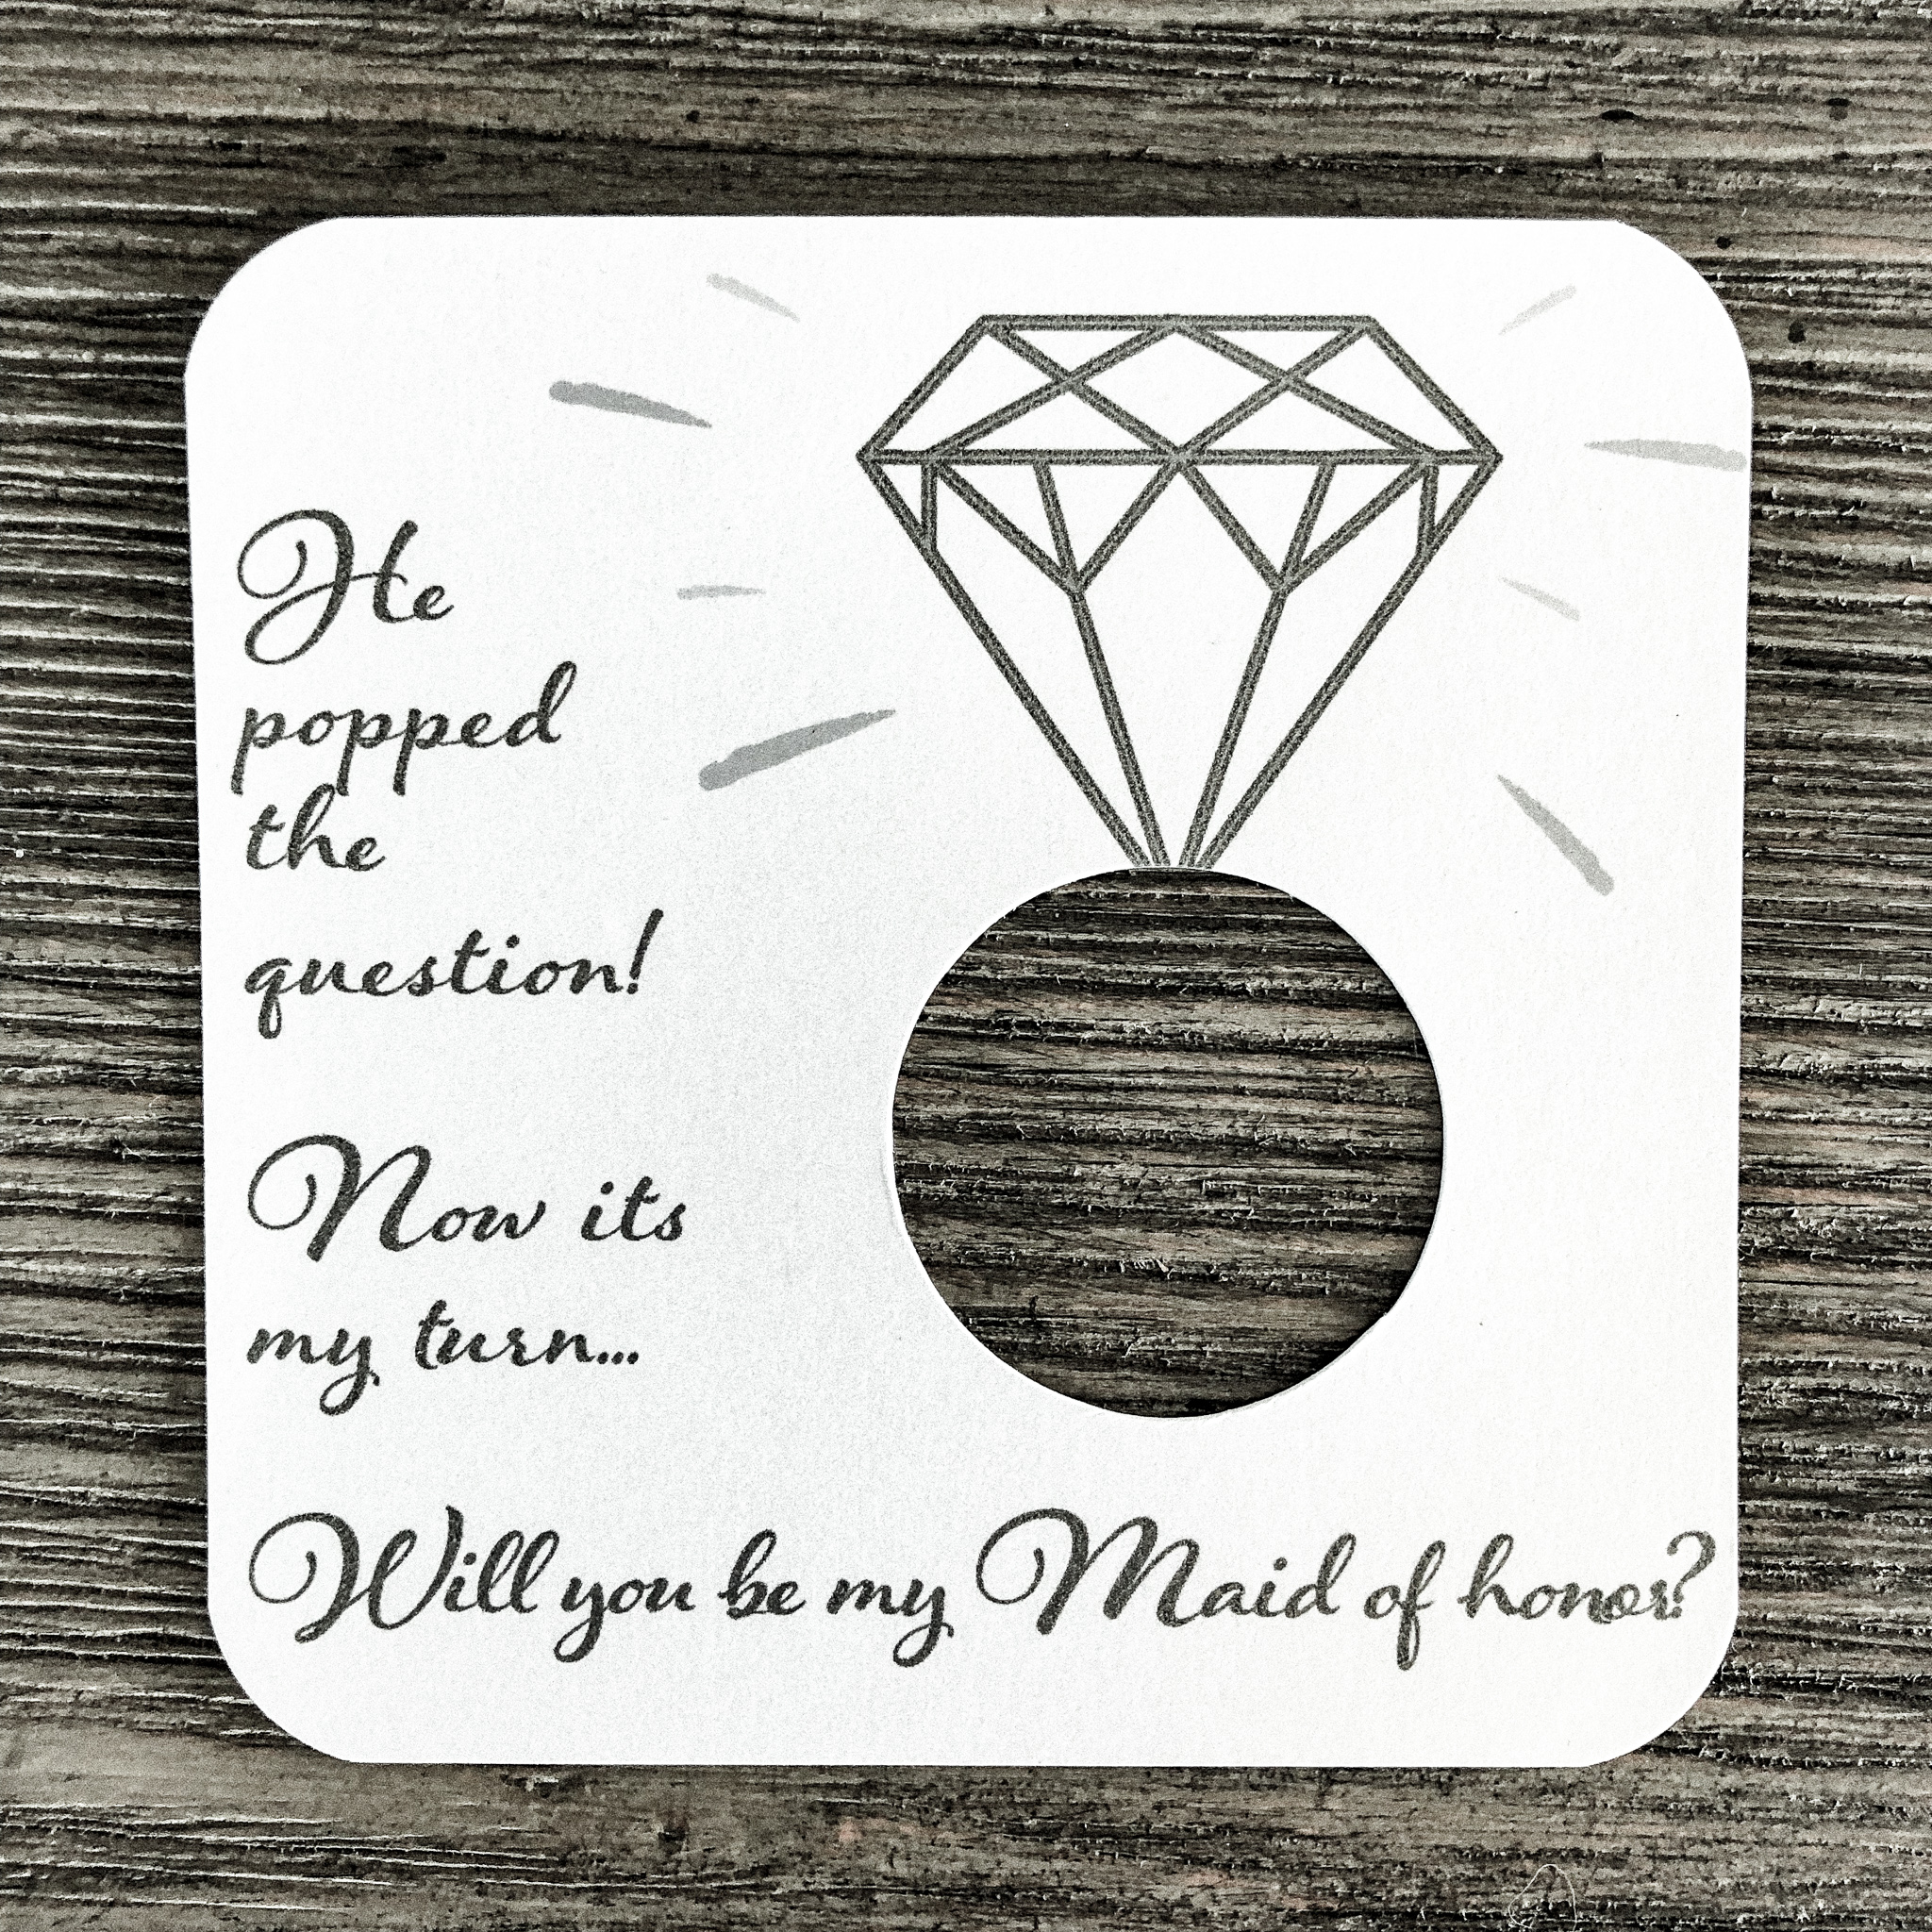 He popped the question! Now its my turn... Will you be my maid of honor? Shimmer white gold card stock.